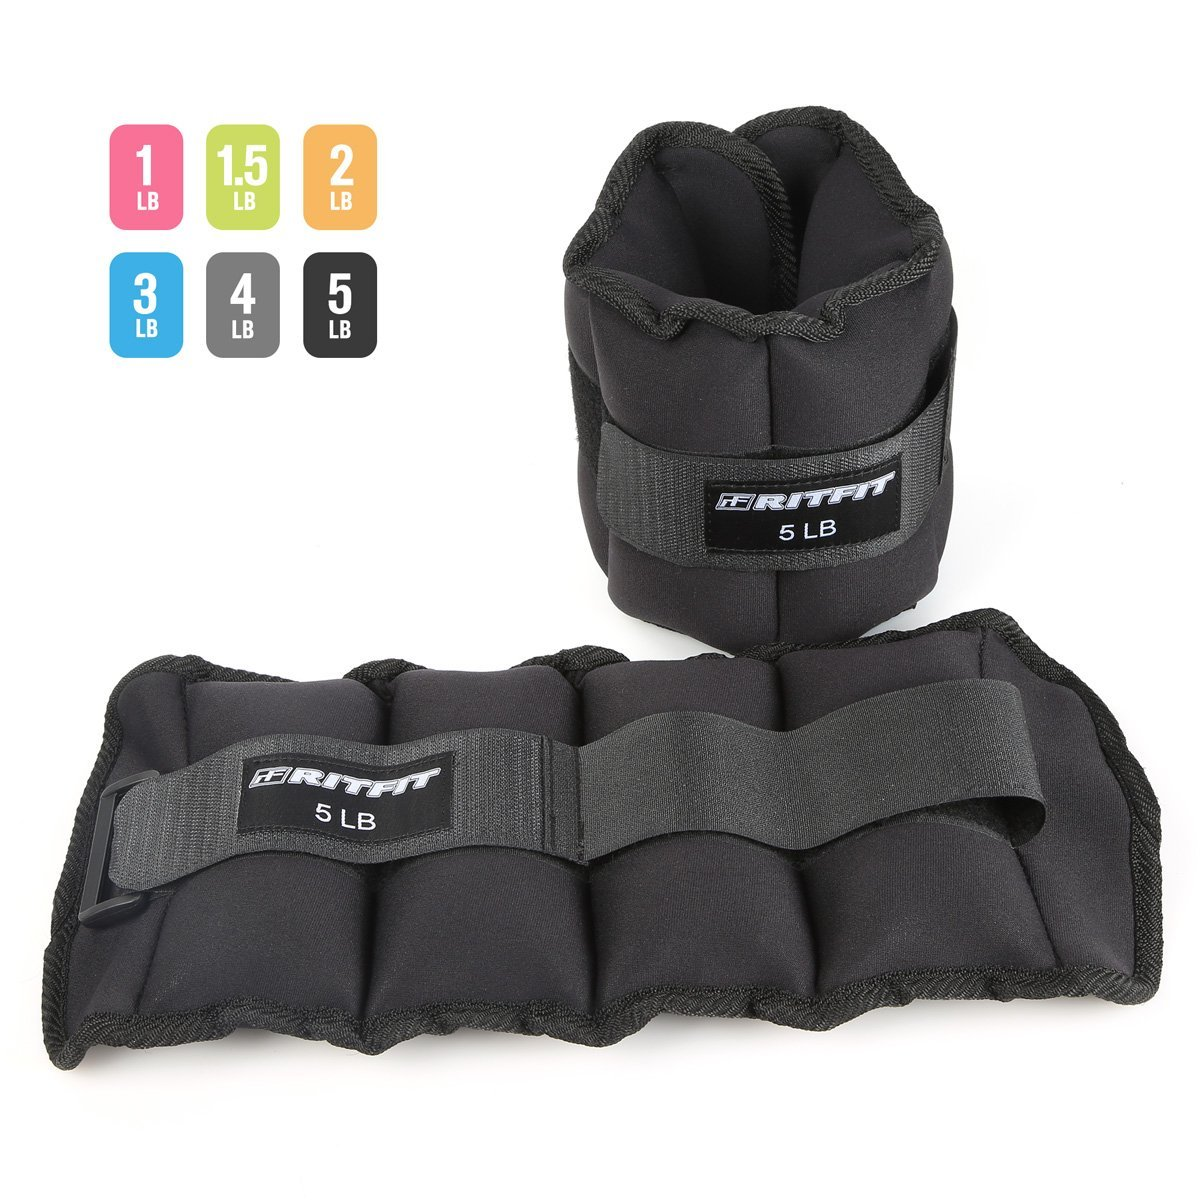 RitFit Ankle/Wrist Weights(1 Pair), Fully Adjustable Weight for Arm, Hand & Leg - Best for Exercise, Fitness, Walking, Jogging, Gymnastics, Aerobics,Gym and Swimming(1lb,1.5lbs,2lbs 3lbs,4lbs,5lbs)